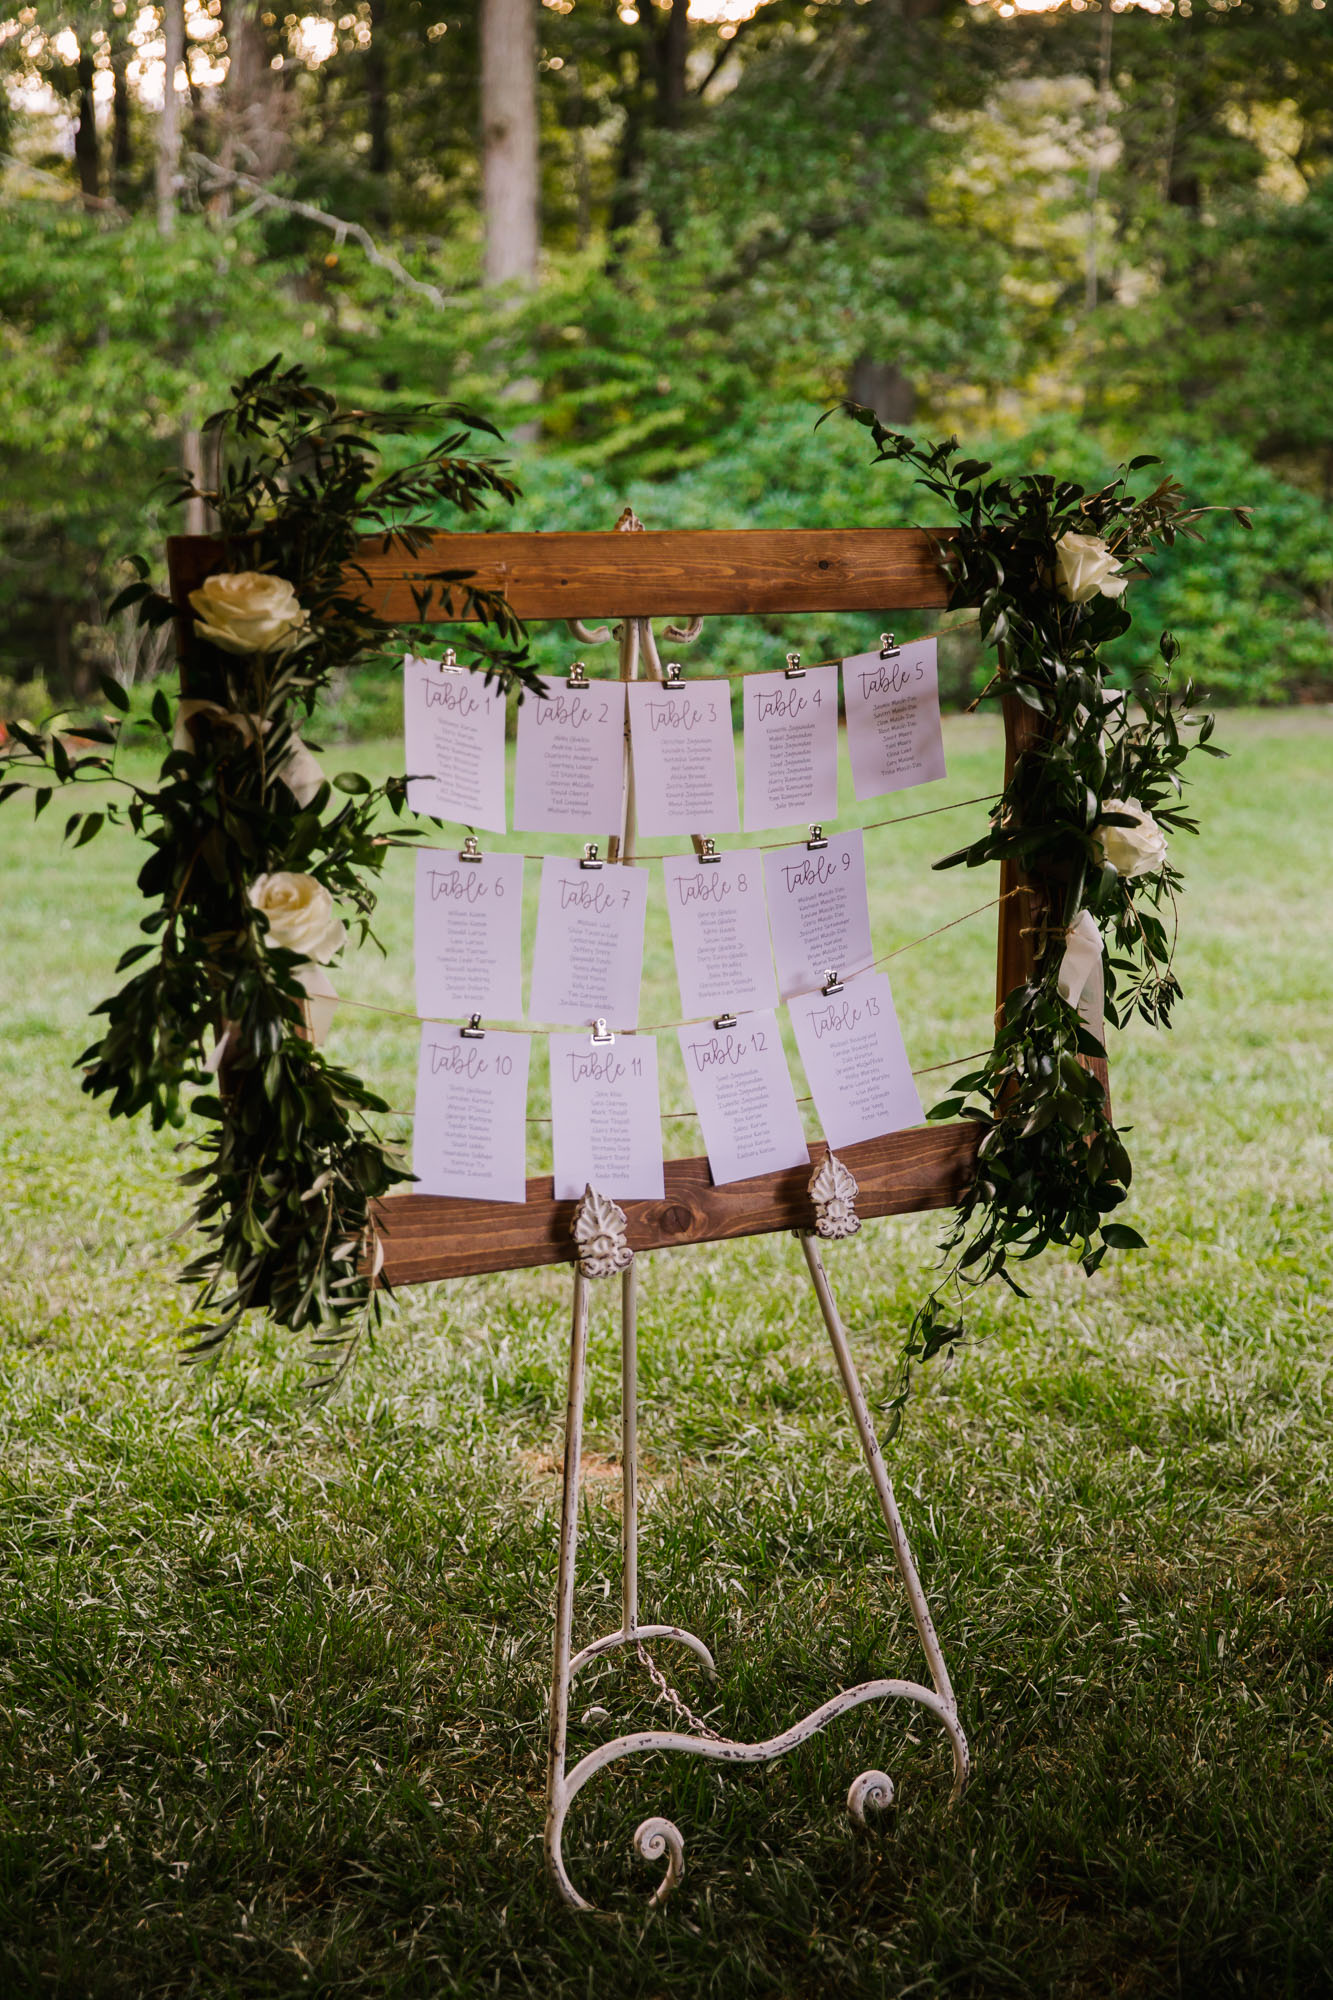 Waynesville NC Wedding Photography | Reception Table Seating Chart